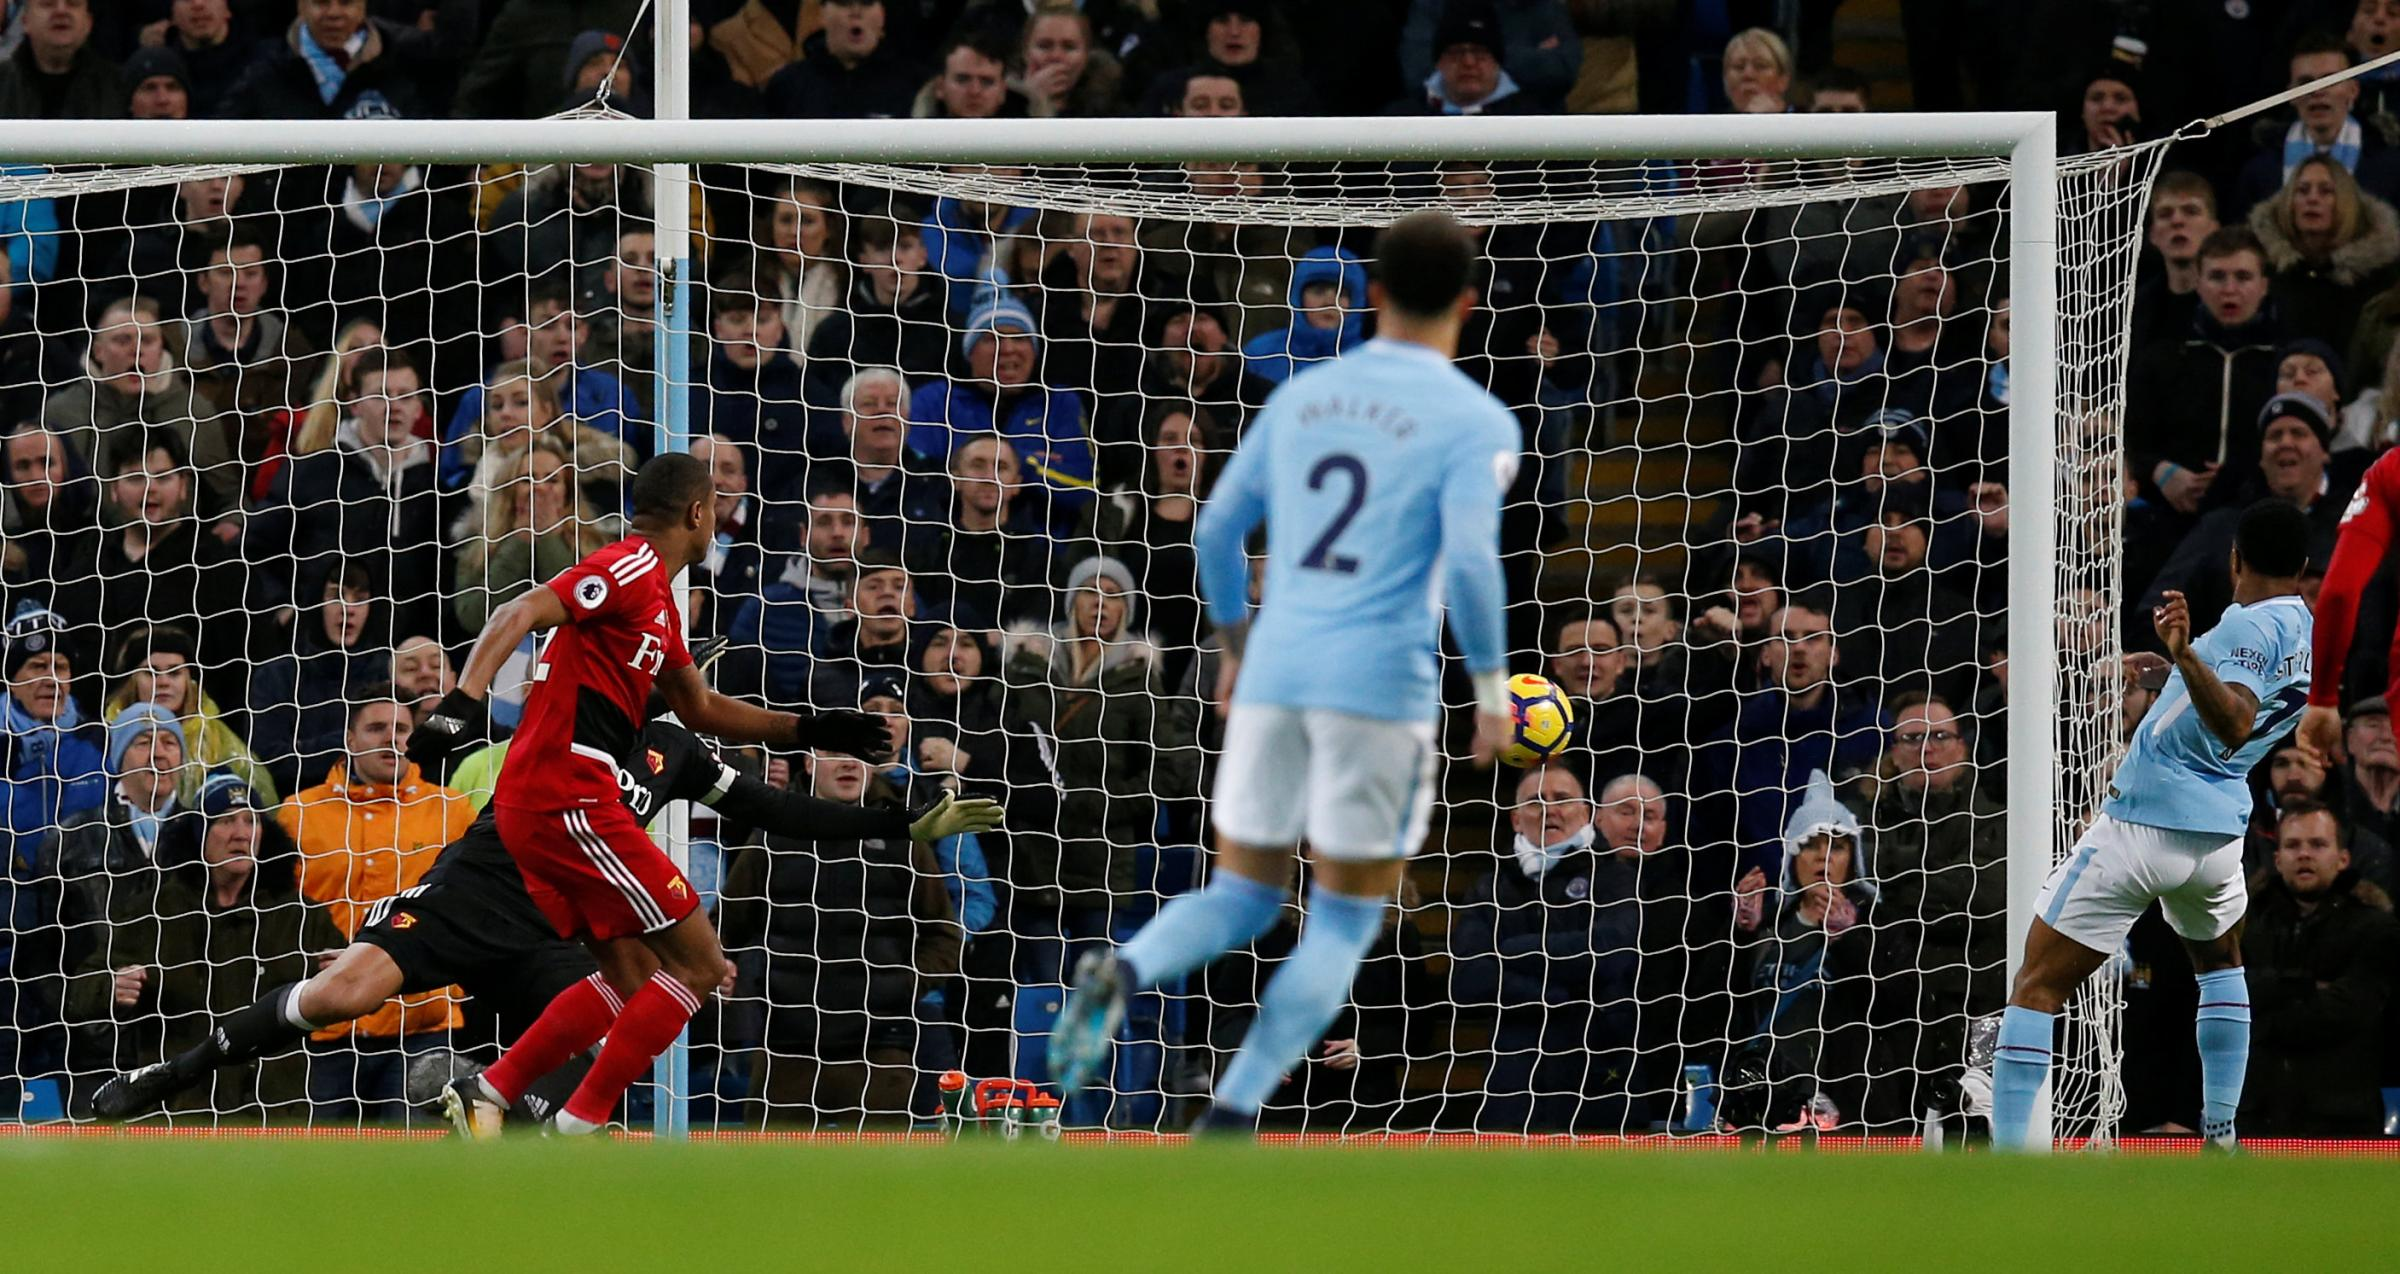 Raheem Sterling puts Watford behind with just 39 seconds on the clock. Picture: Action Images